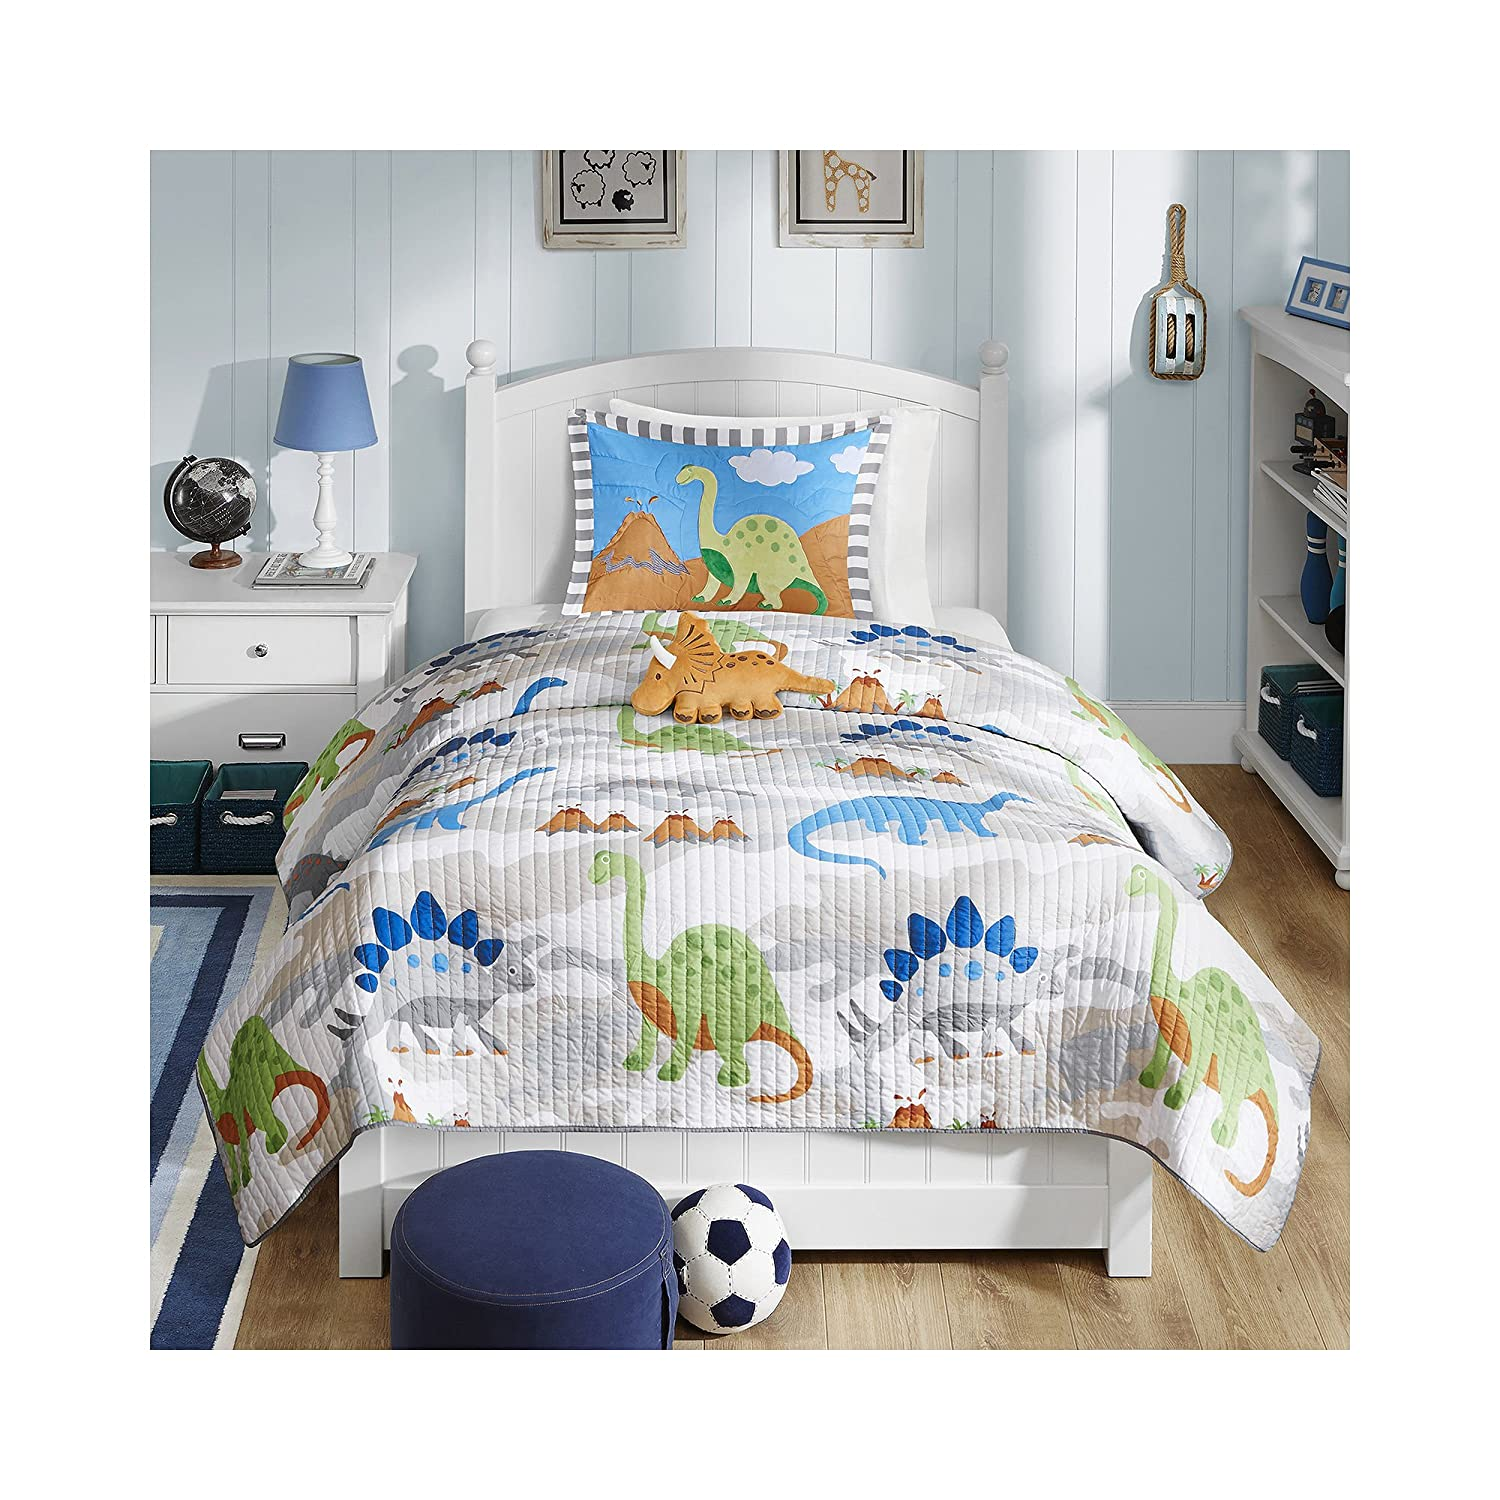 Mizone Kids Little Foot 4 Piece Coverlet Set, Multicolor, Full/Queen